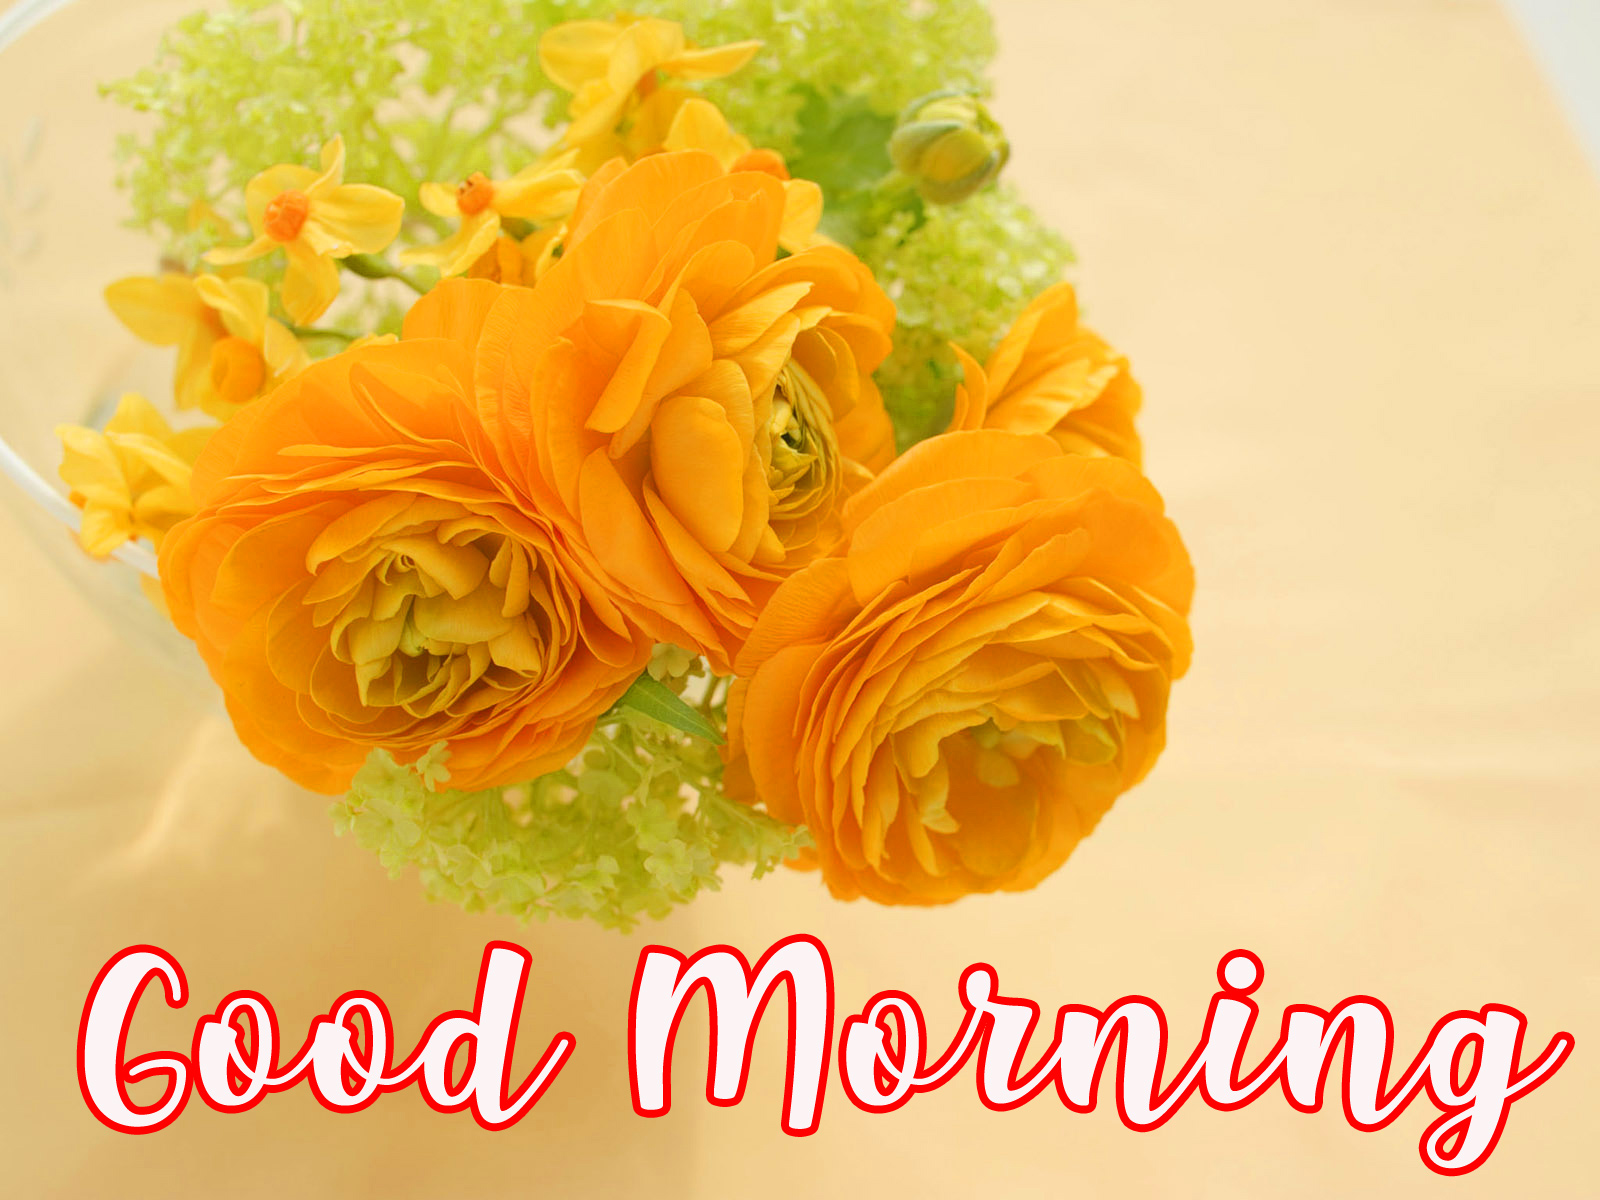 Good Morning Wishes Images With Romantic roses photo Pics HD For Whatsapp